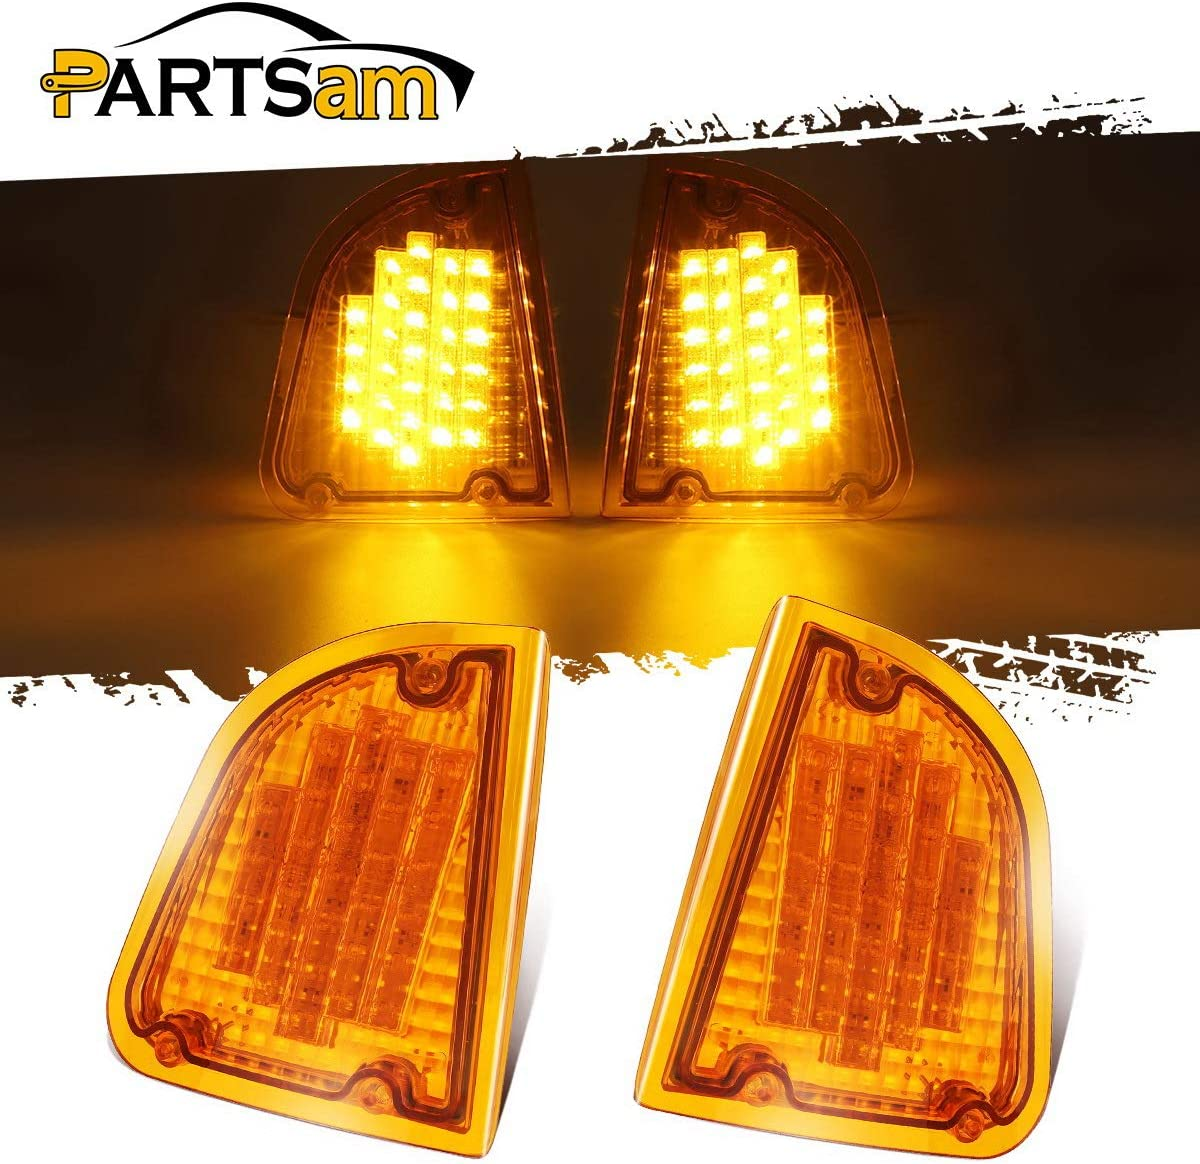 Partsam 29 Amber LED Front 優先配送 P T お金を節約 Assembly Replacement for Light C